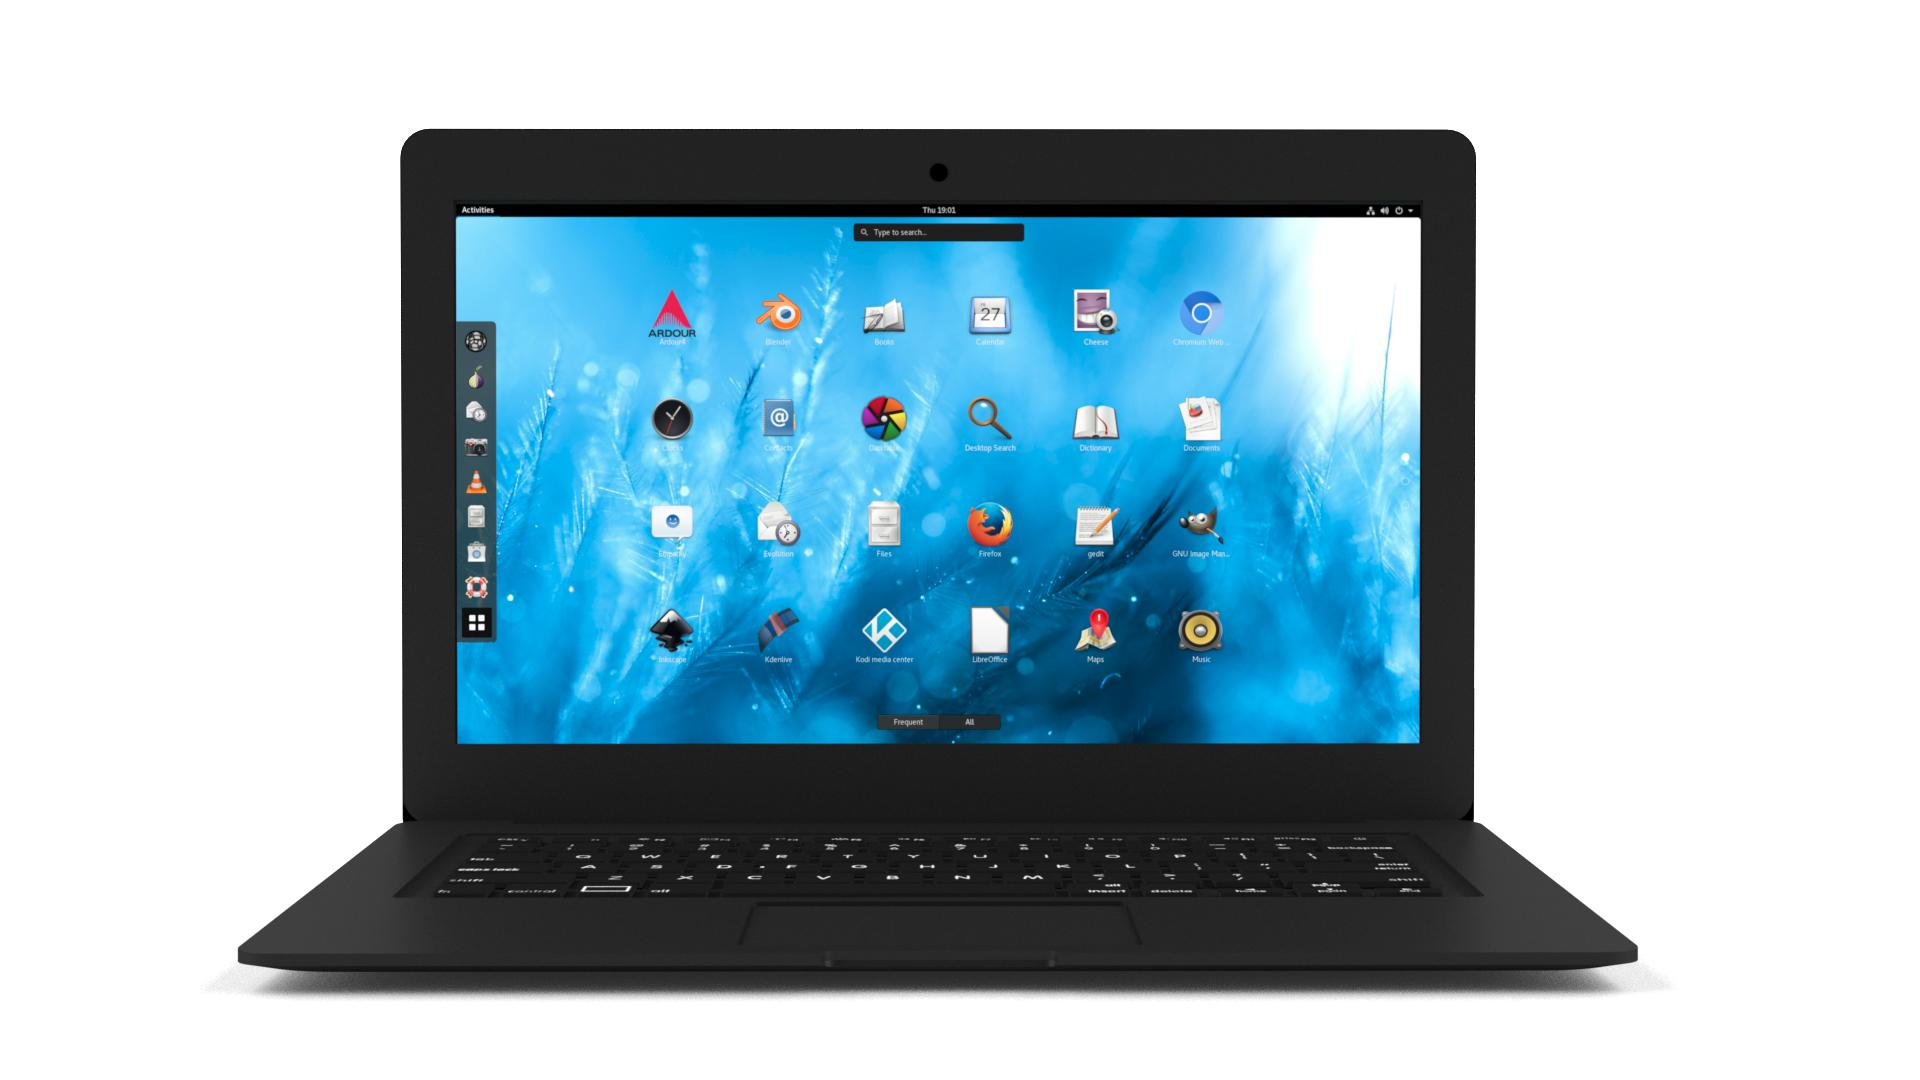 Librem 13 laptop